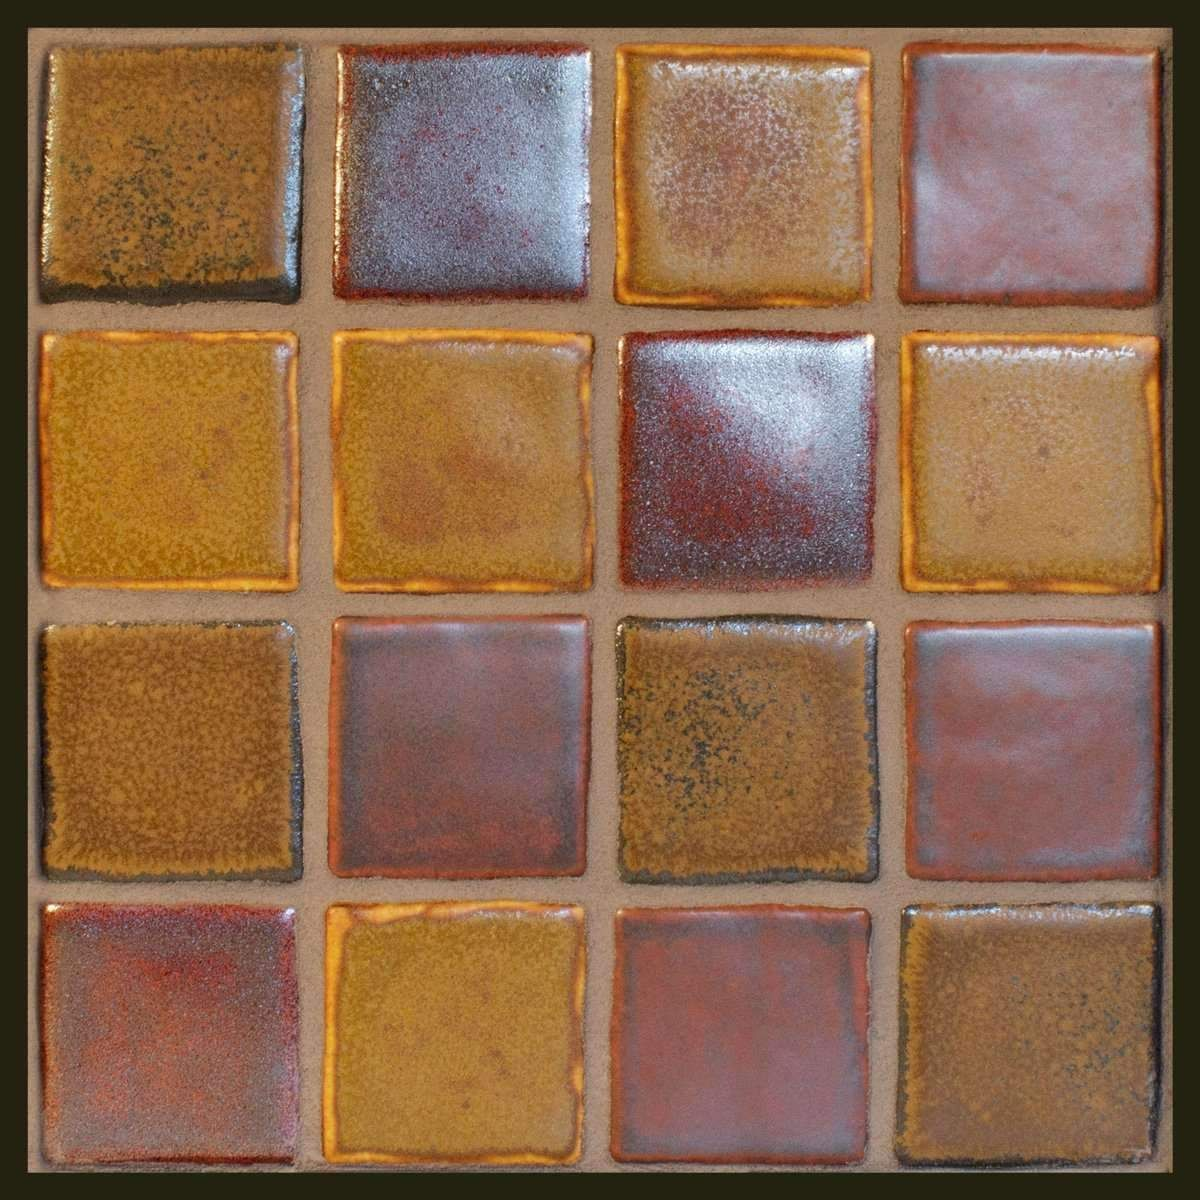 Installation Tile Pewabic Pottery In 2020 Pewabic Pottery Tiles Pottery